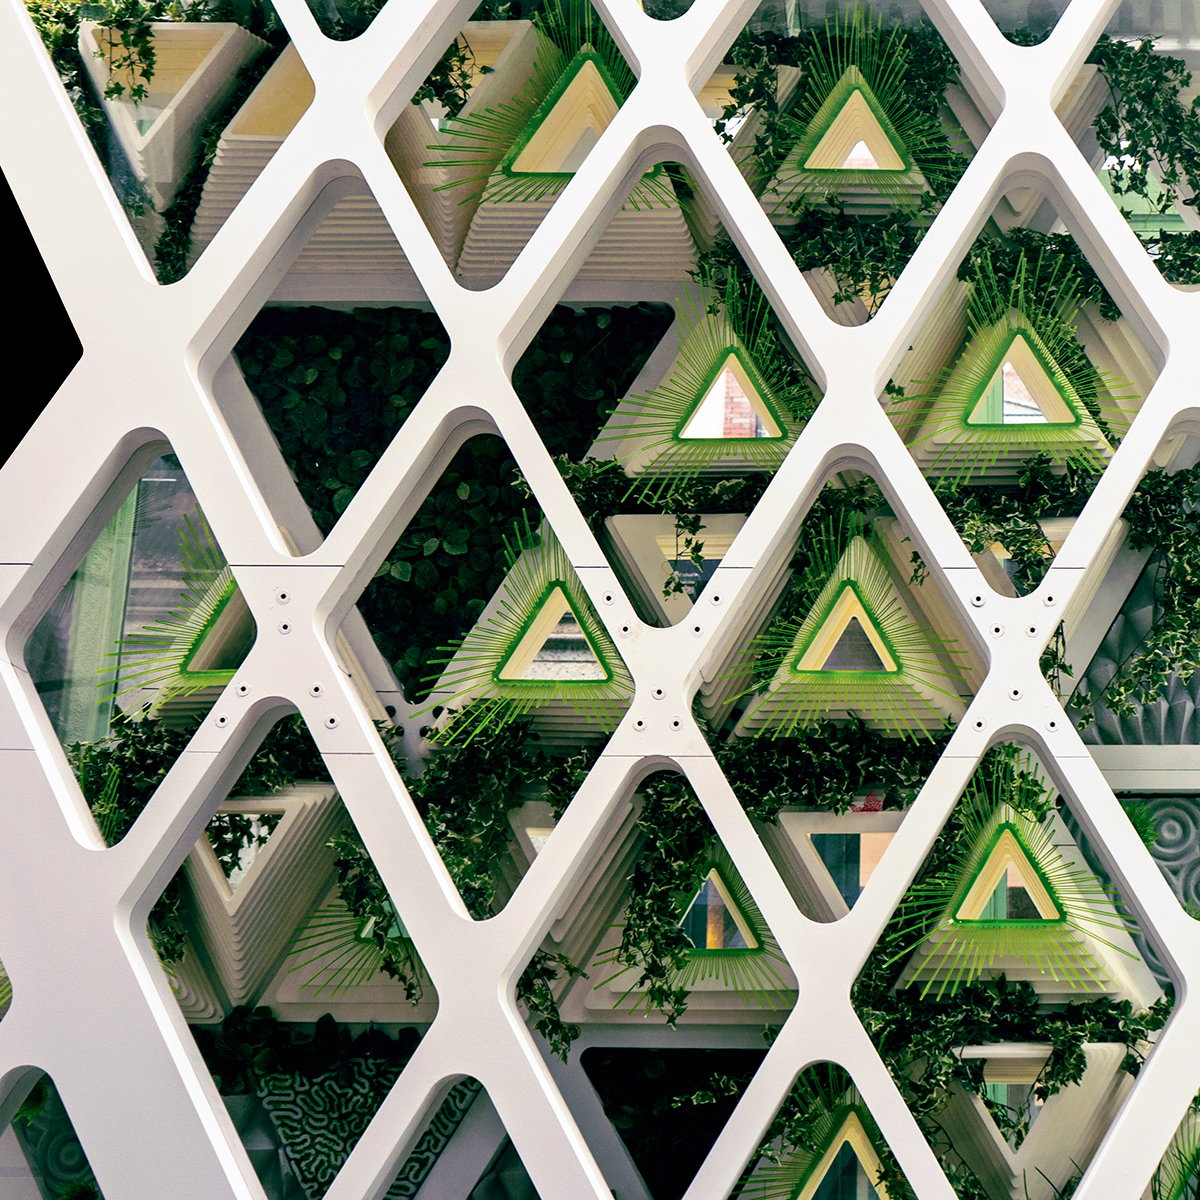 Terreform ONE Debuts 'Monarch Sanctuary' at Cooper Hewitt Nature Exhibition